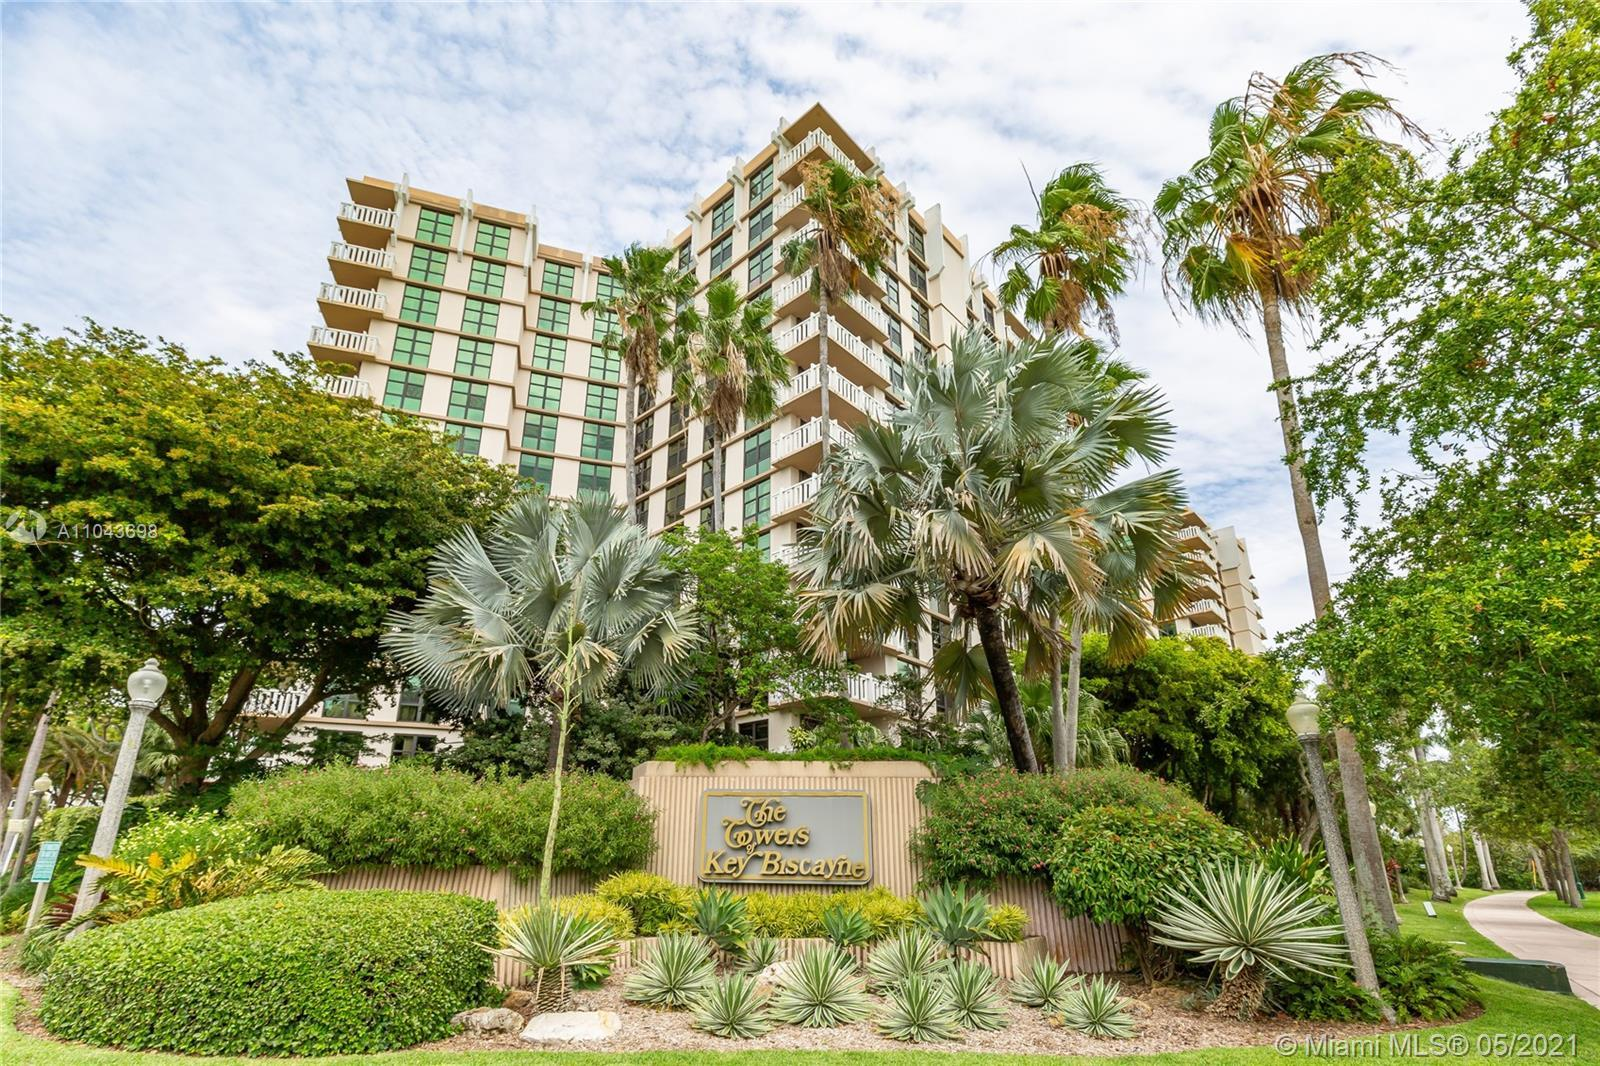 Towers of Key Biscayne - Condos for sale